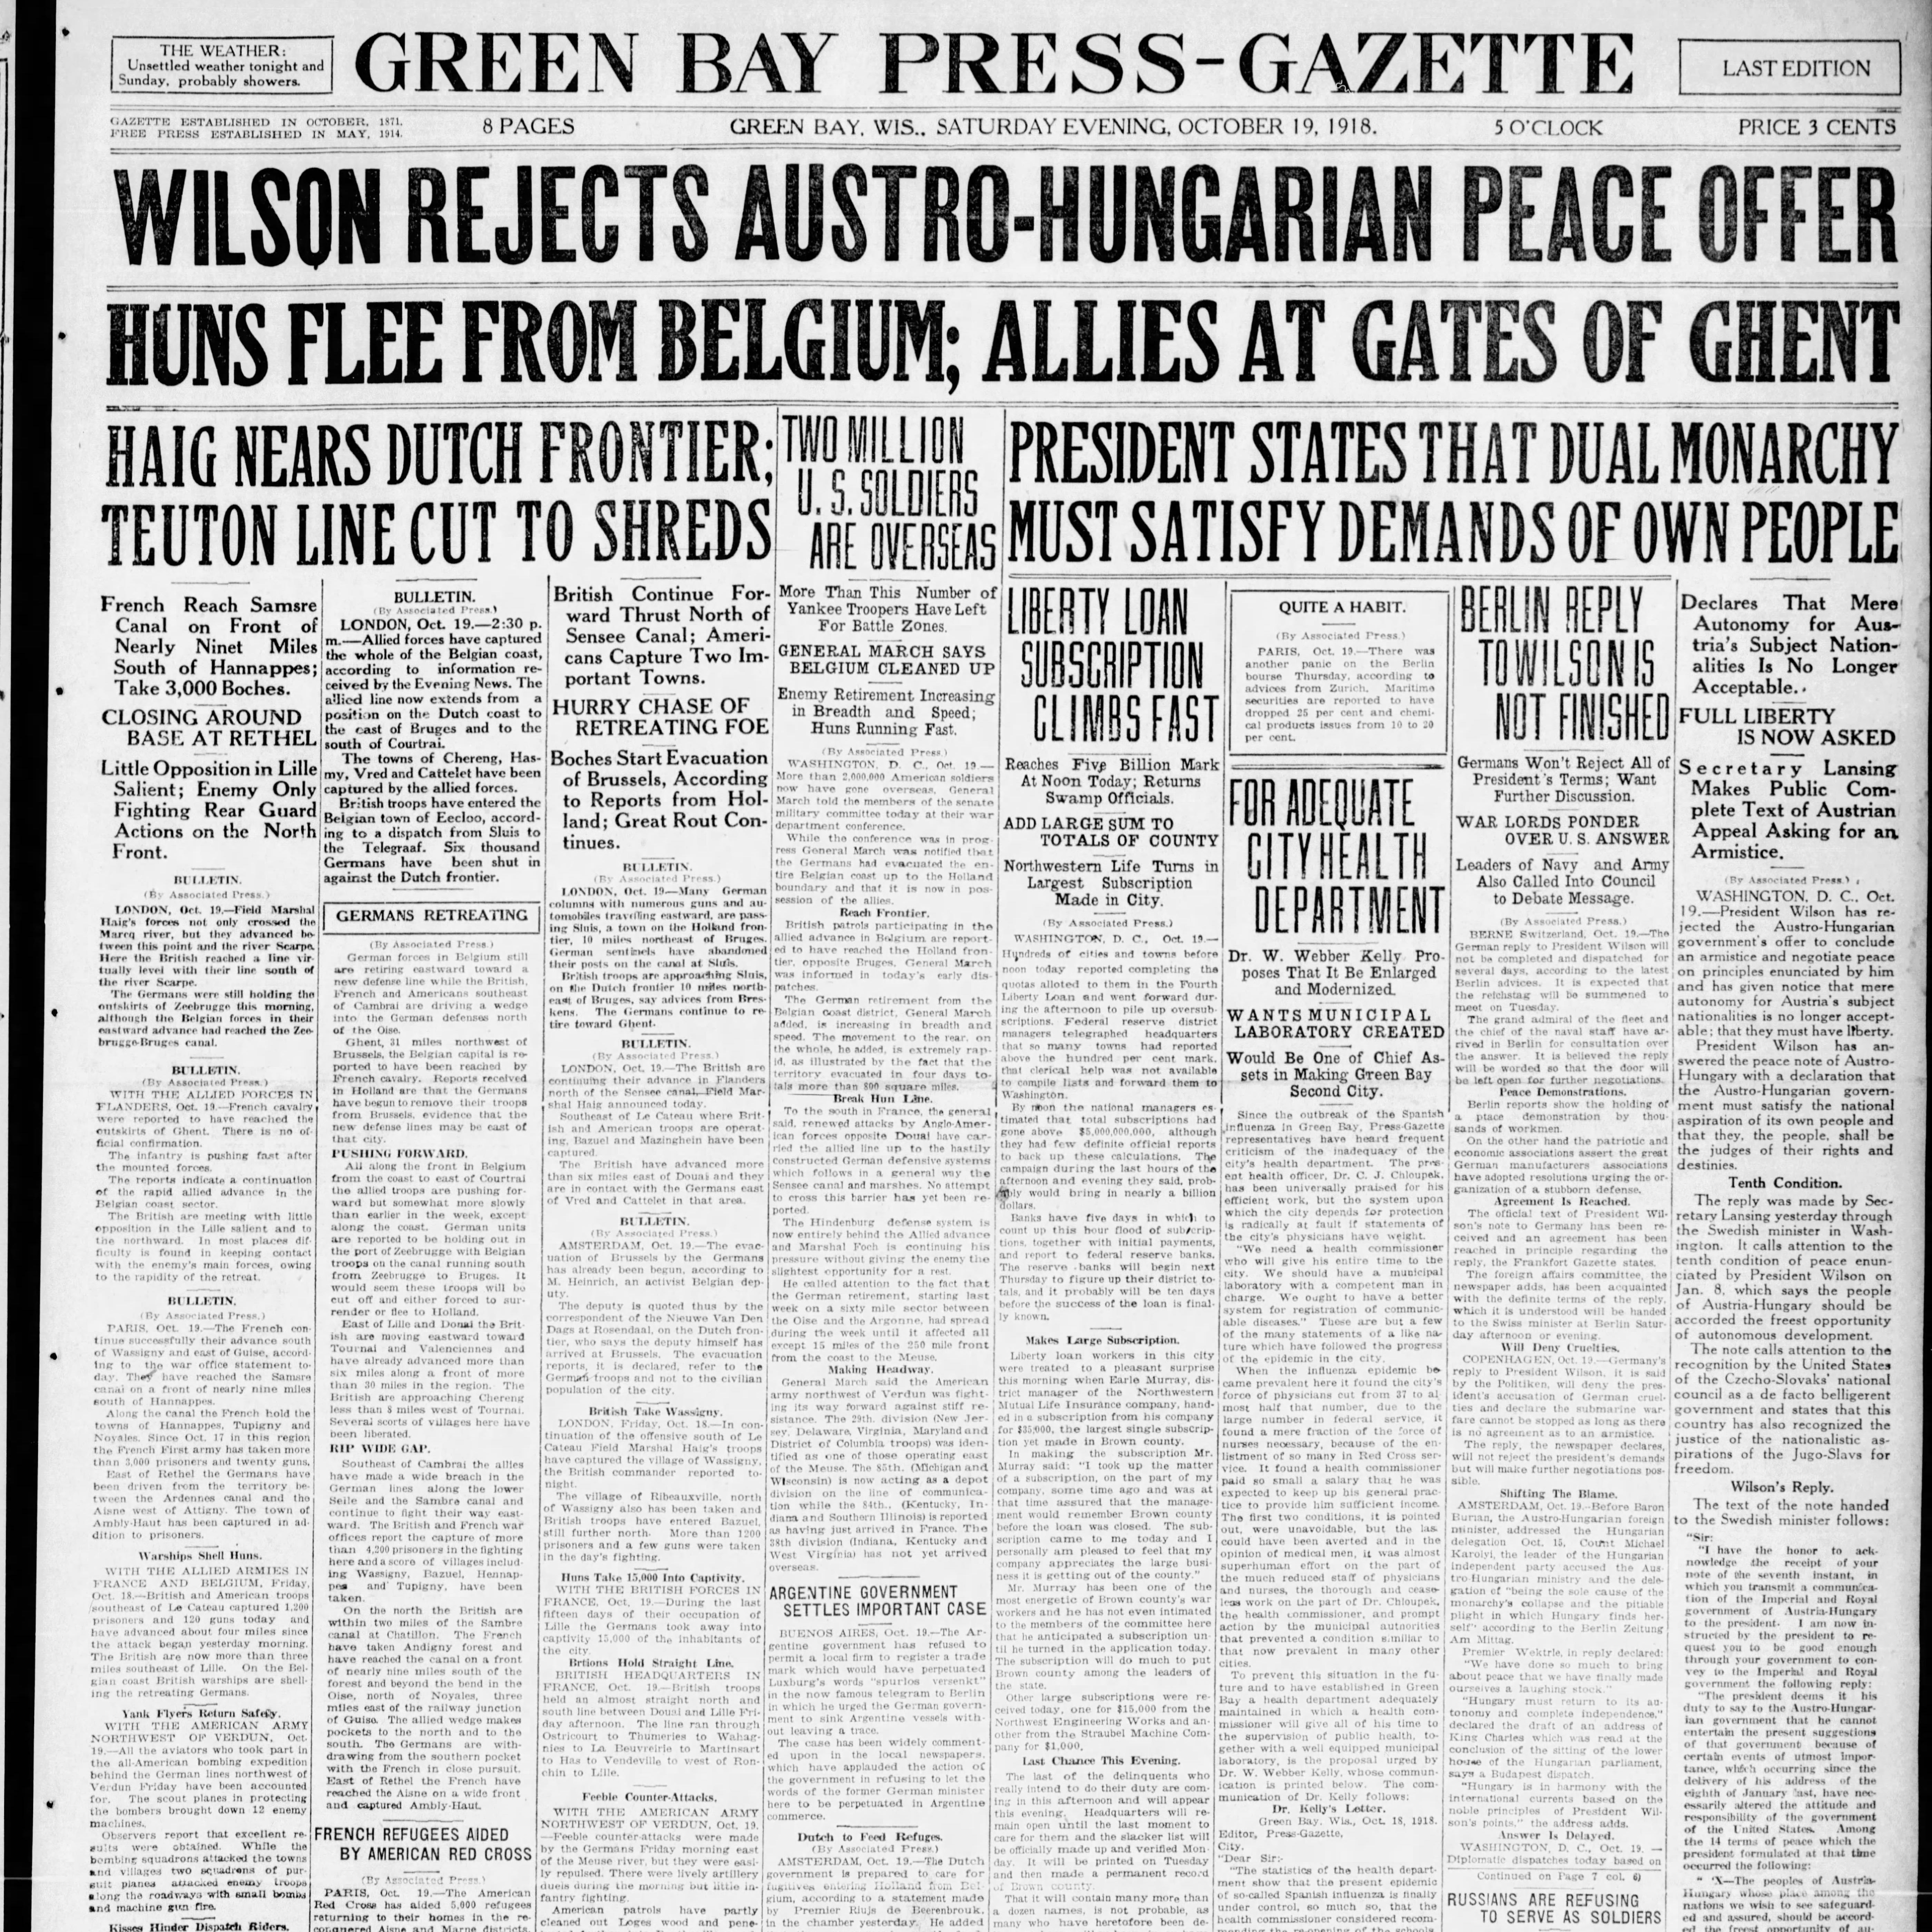 Green Bay Press-Gazette today in history: Oct. 19